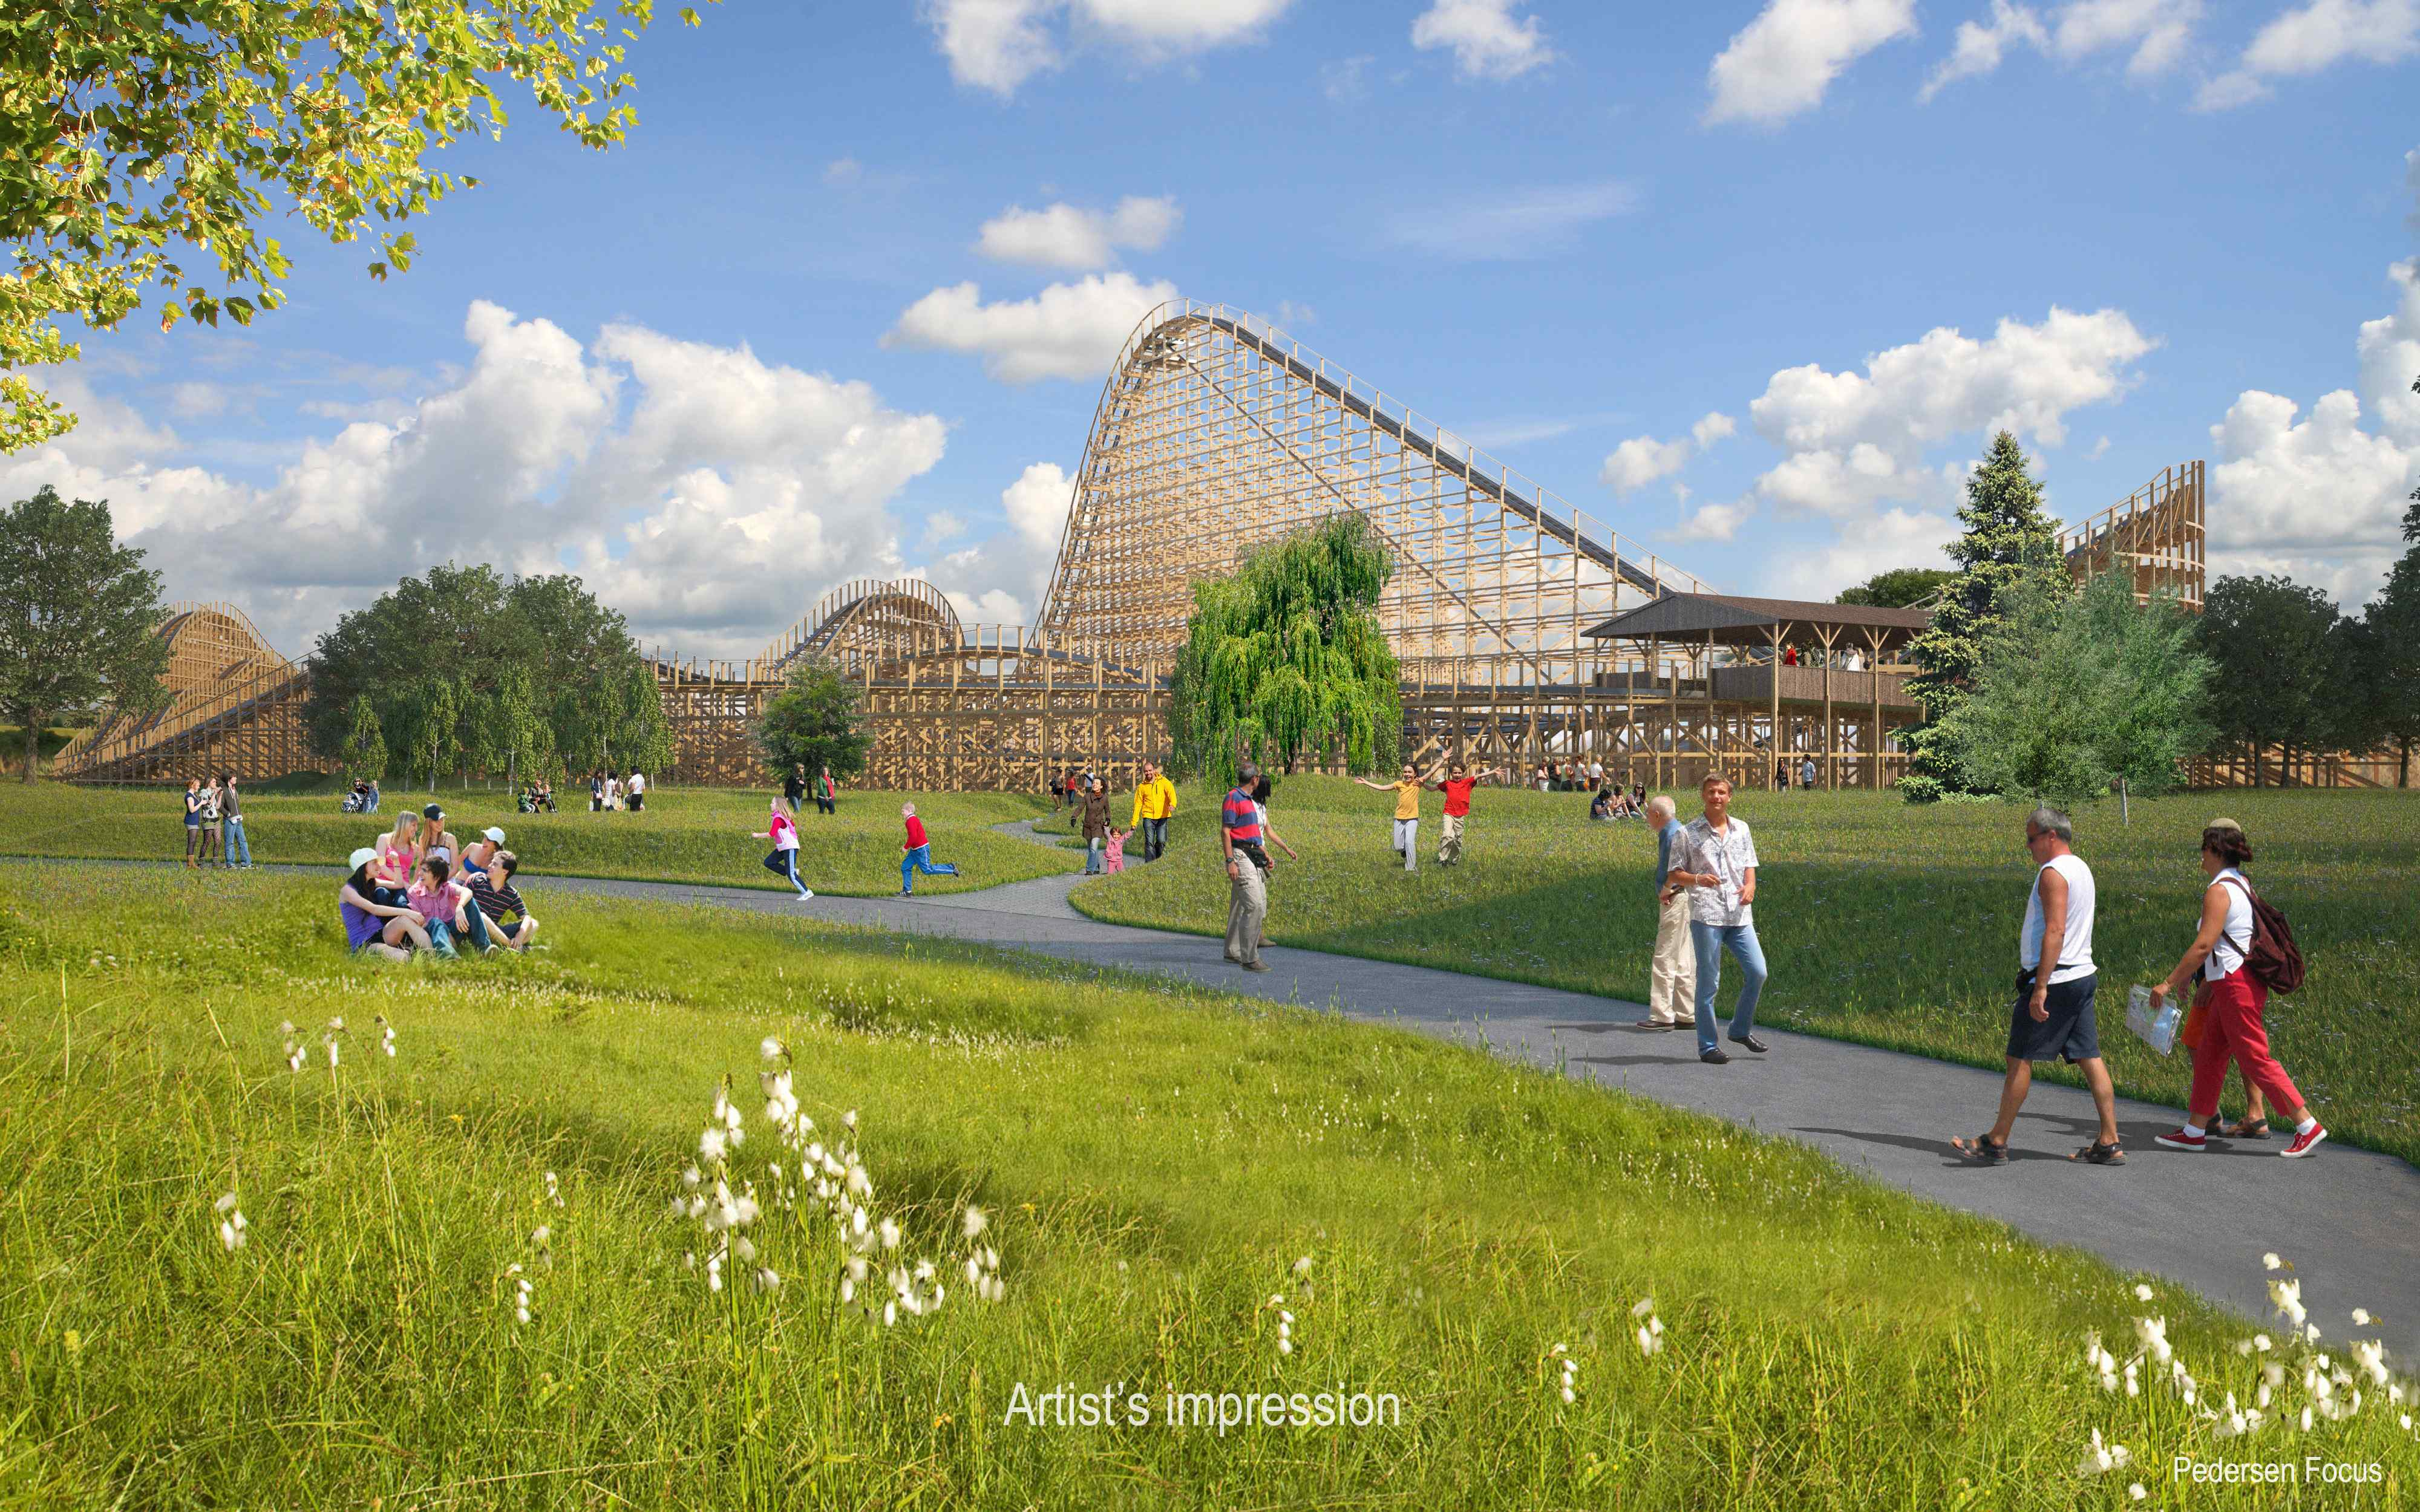 Ireland's Tayto Park eyes Europe's big boys with massive new roller coaster